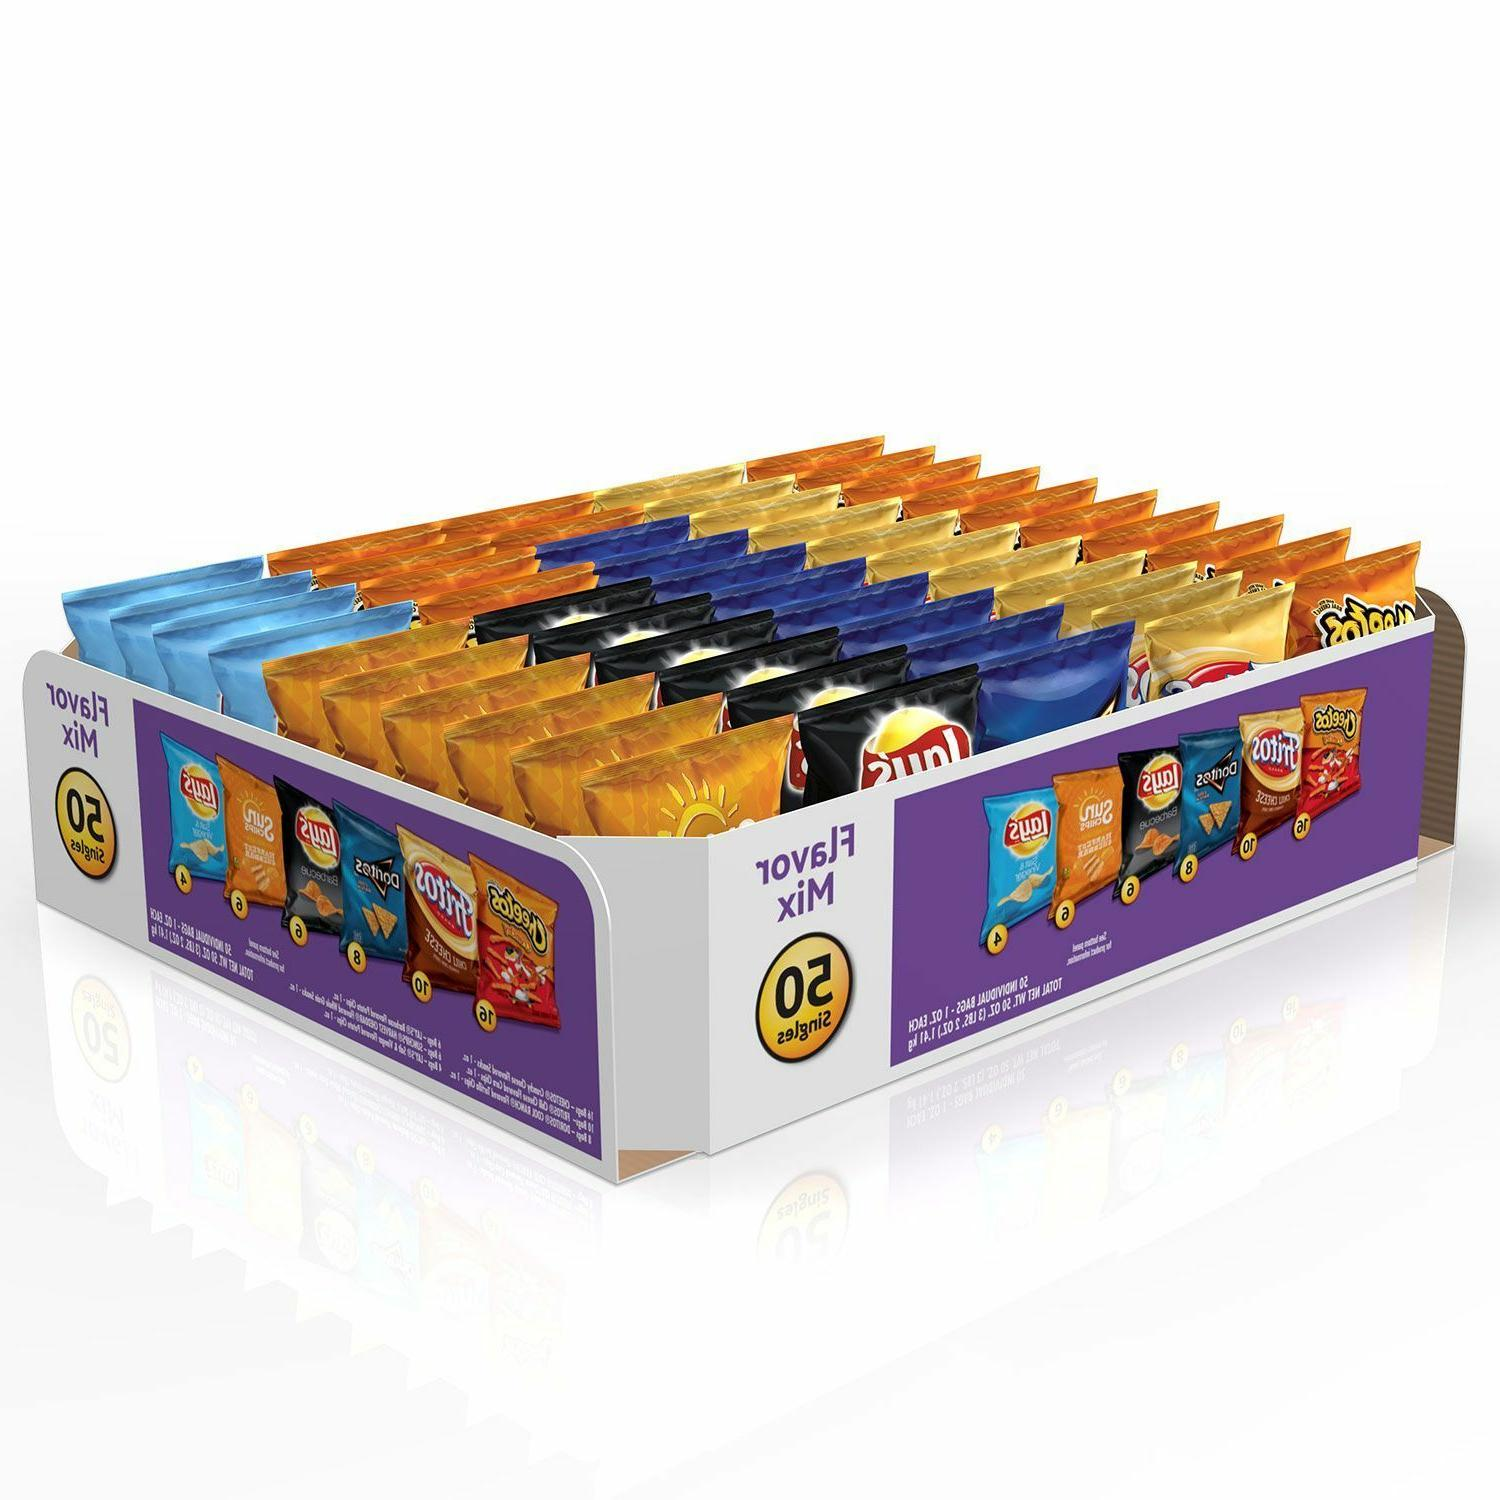 Frito-Lay Flavor Mix Chips and Snacks Variety Pack 1 oz.